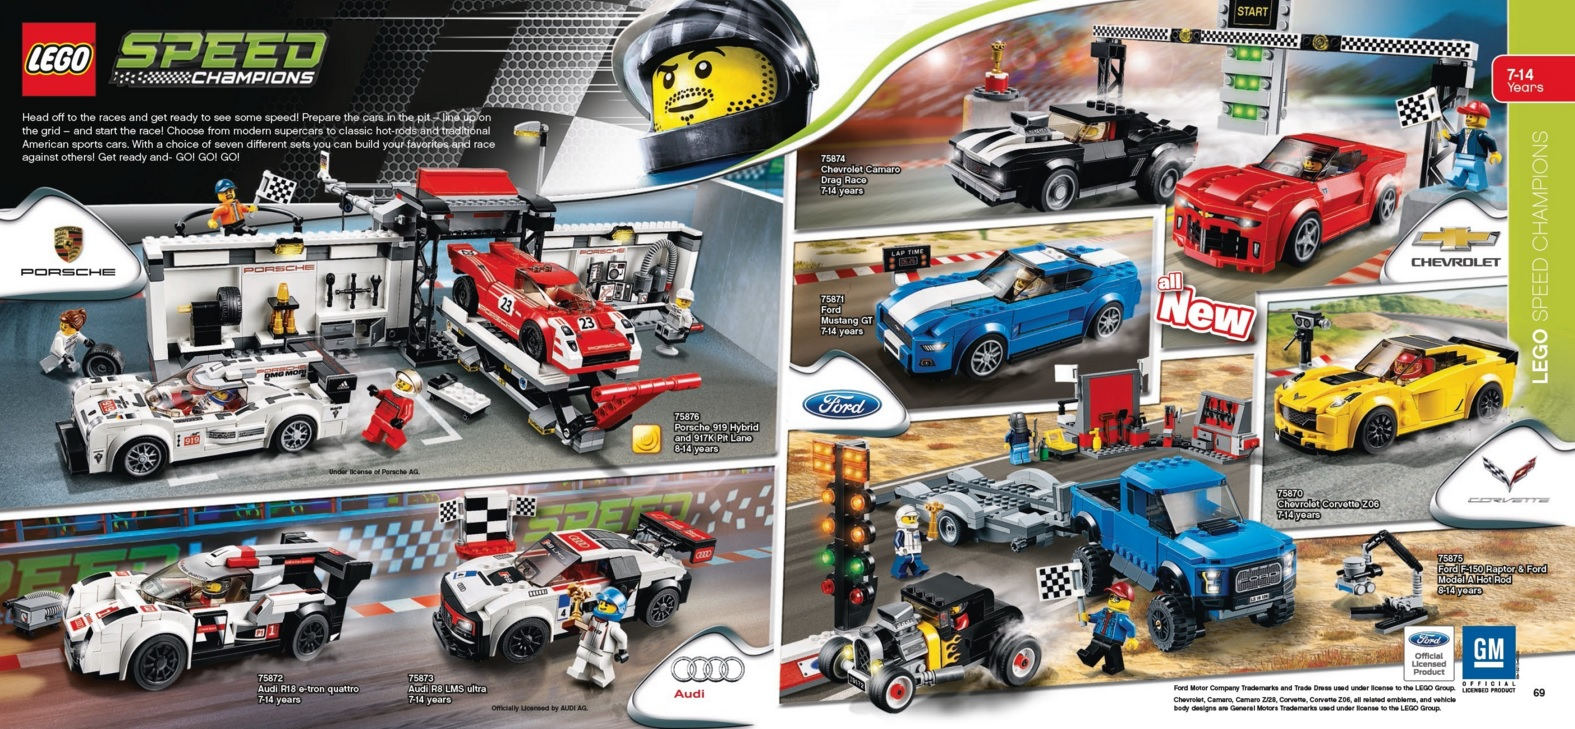 Australian Lego Release Dates First Half Of 2016 Sets January